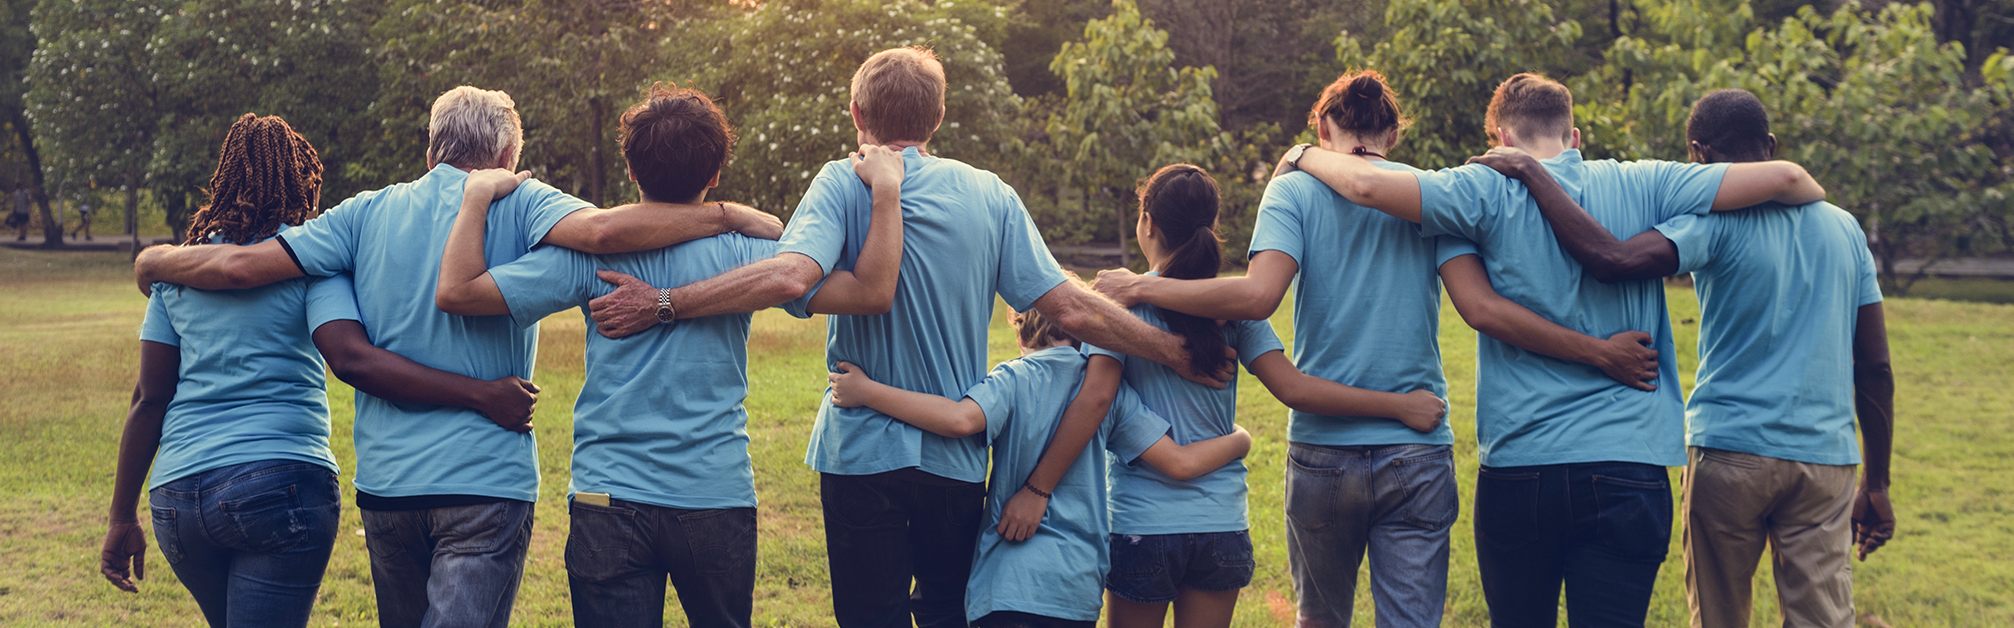 5 Ways to Volunteer and Build Community | Better Homes and